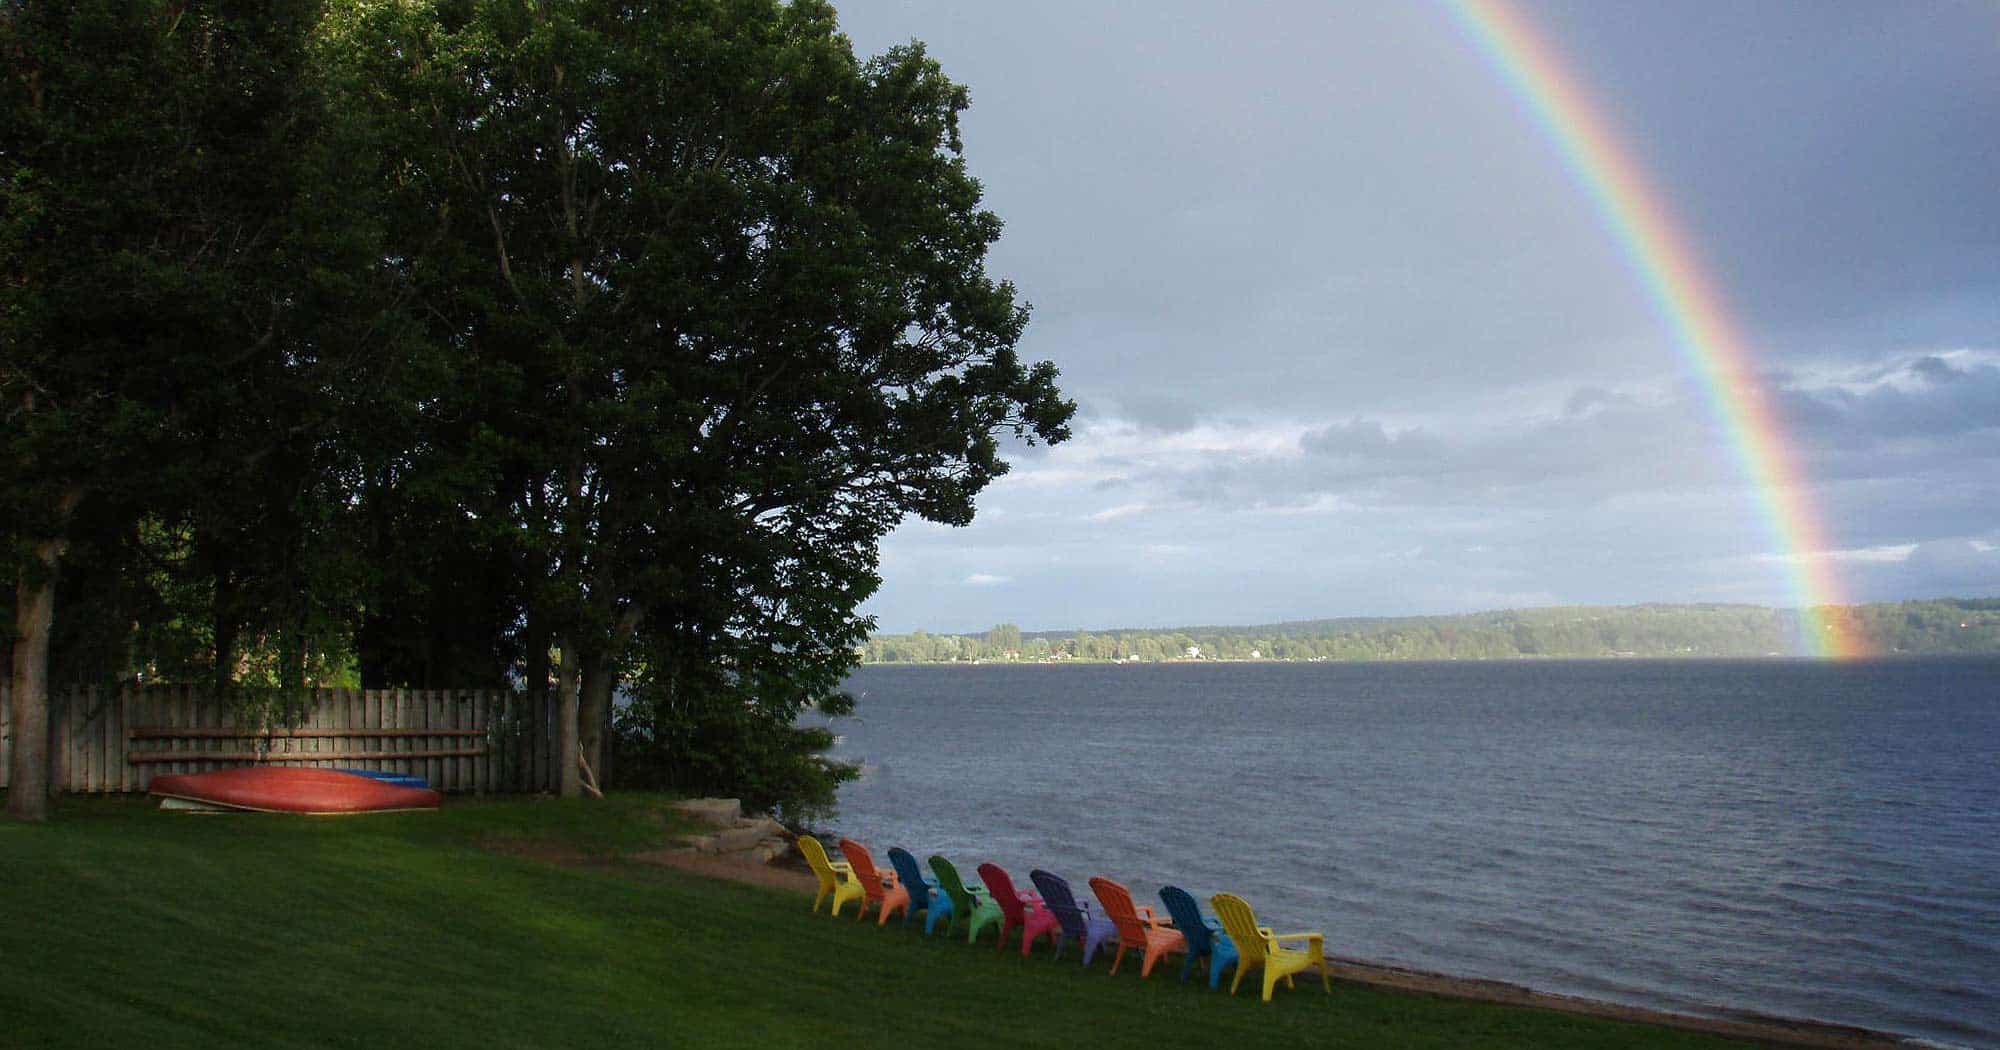 View of Calabogie Lake with colourful chairs at the water;s edge and a rainbow.